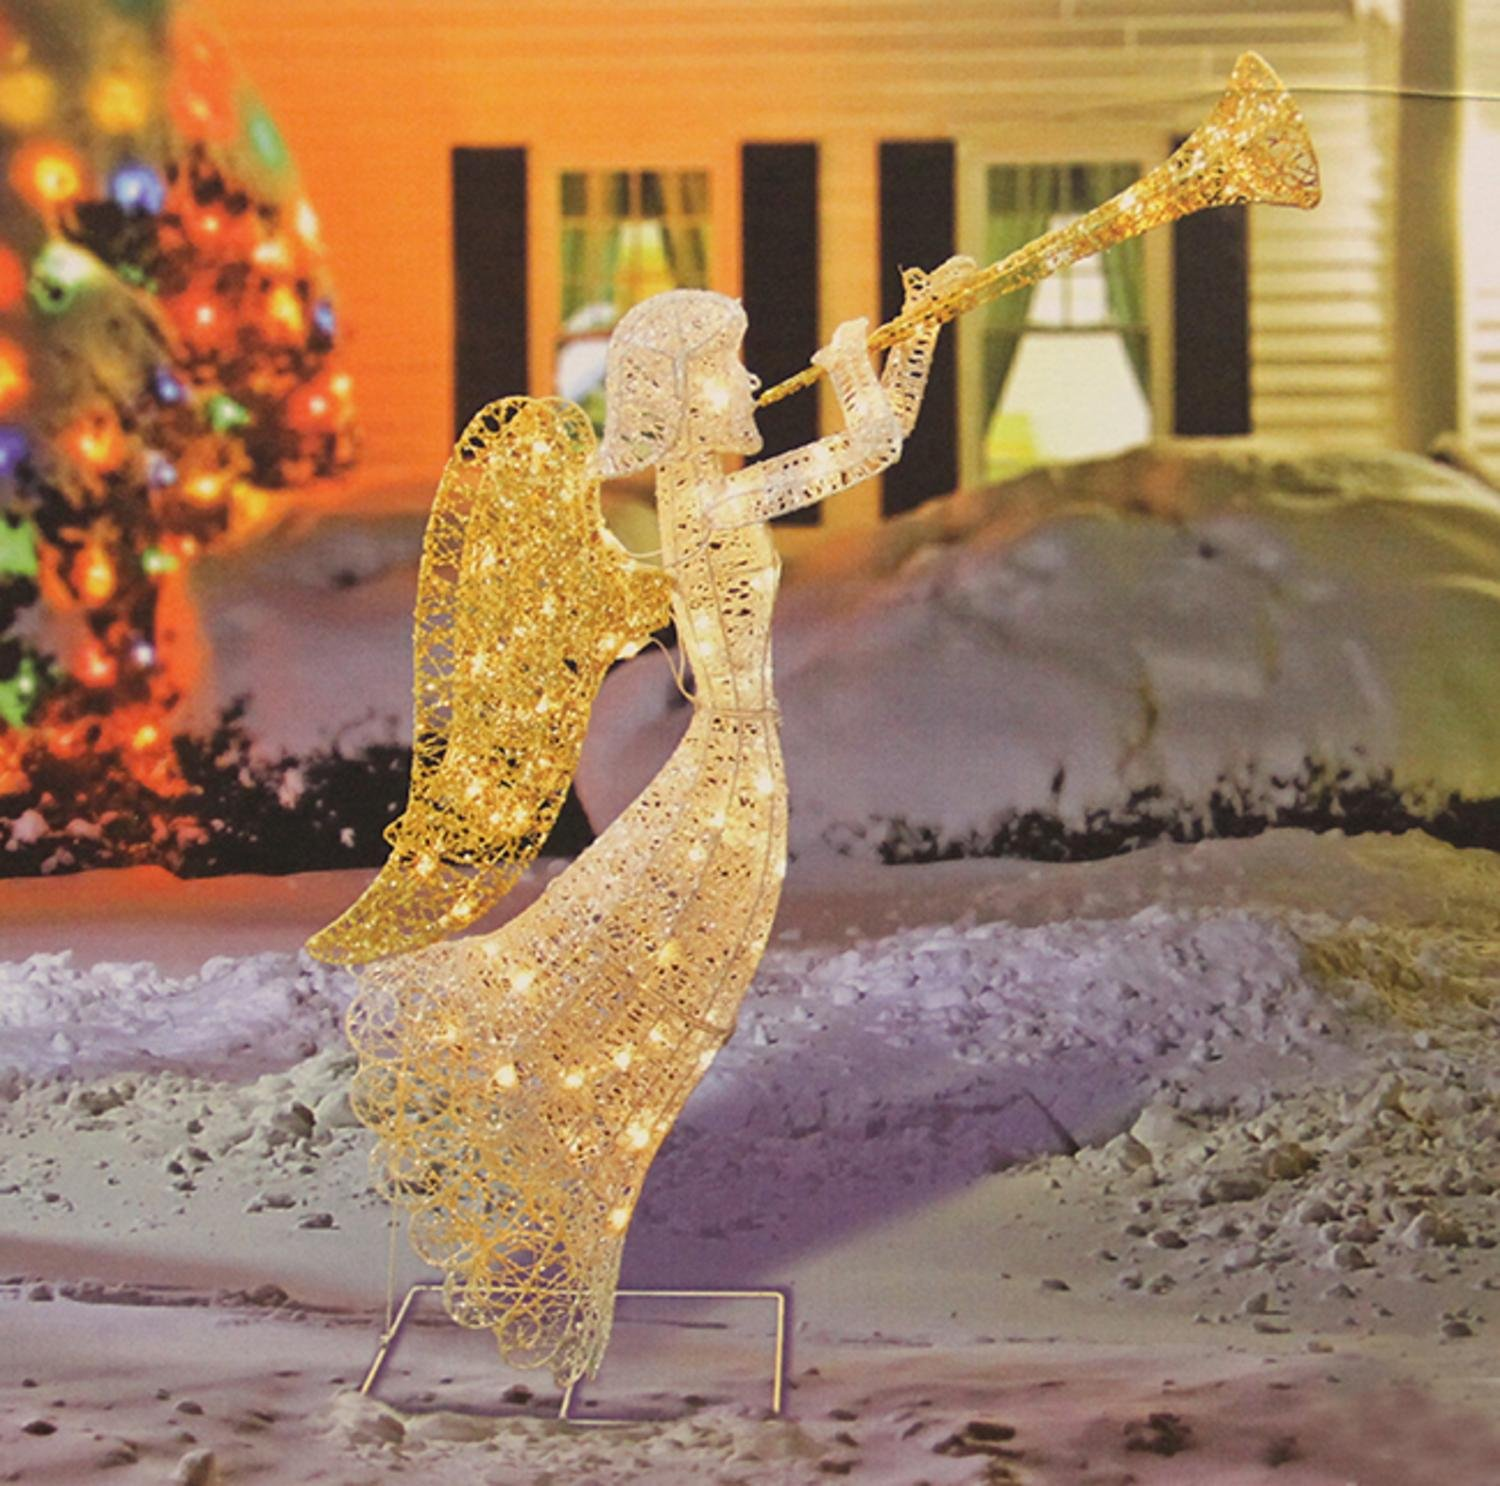 amazoncom penn 58 397w 066 48 glittered trumpeting angel lighted christmas yard art decoration home kitchen - Christmas Angel Yard Decorations